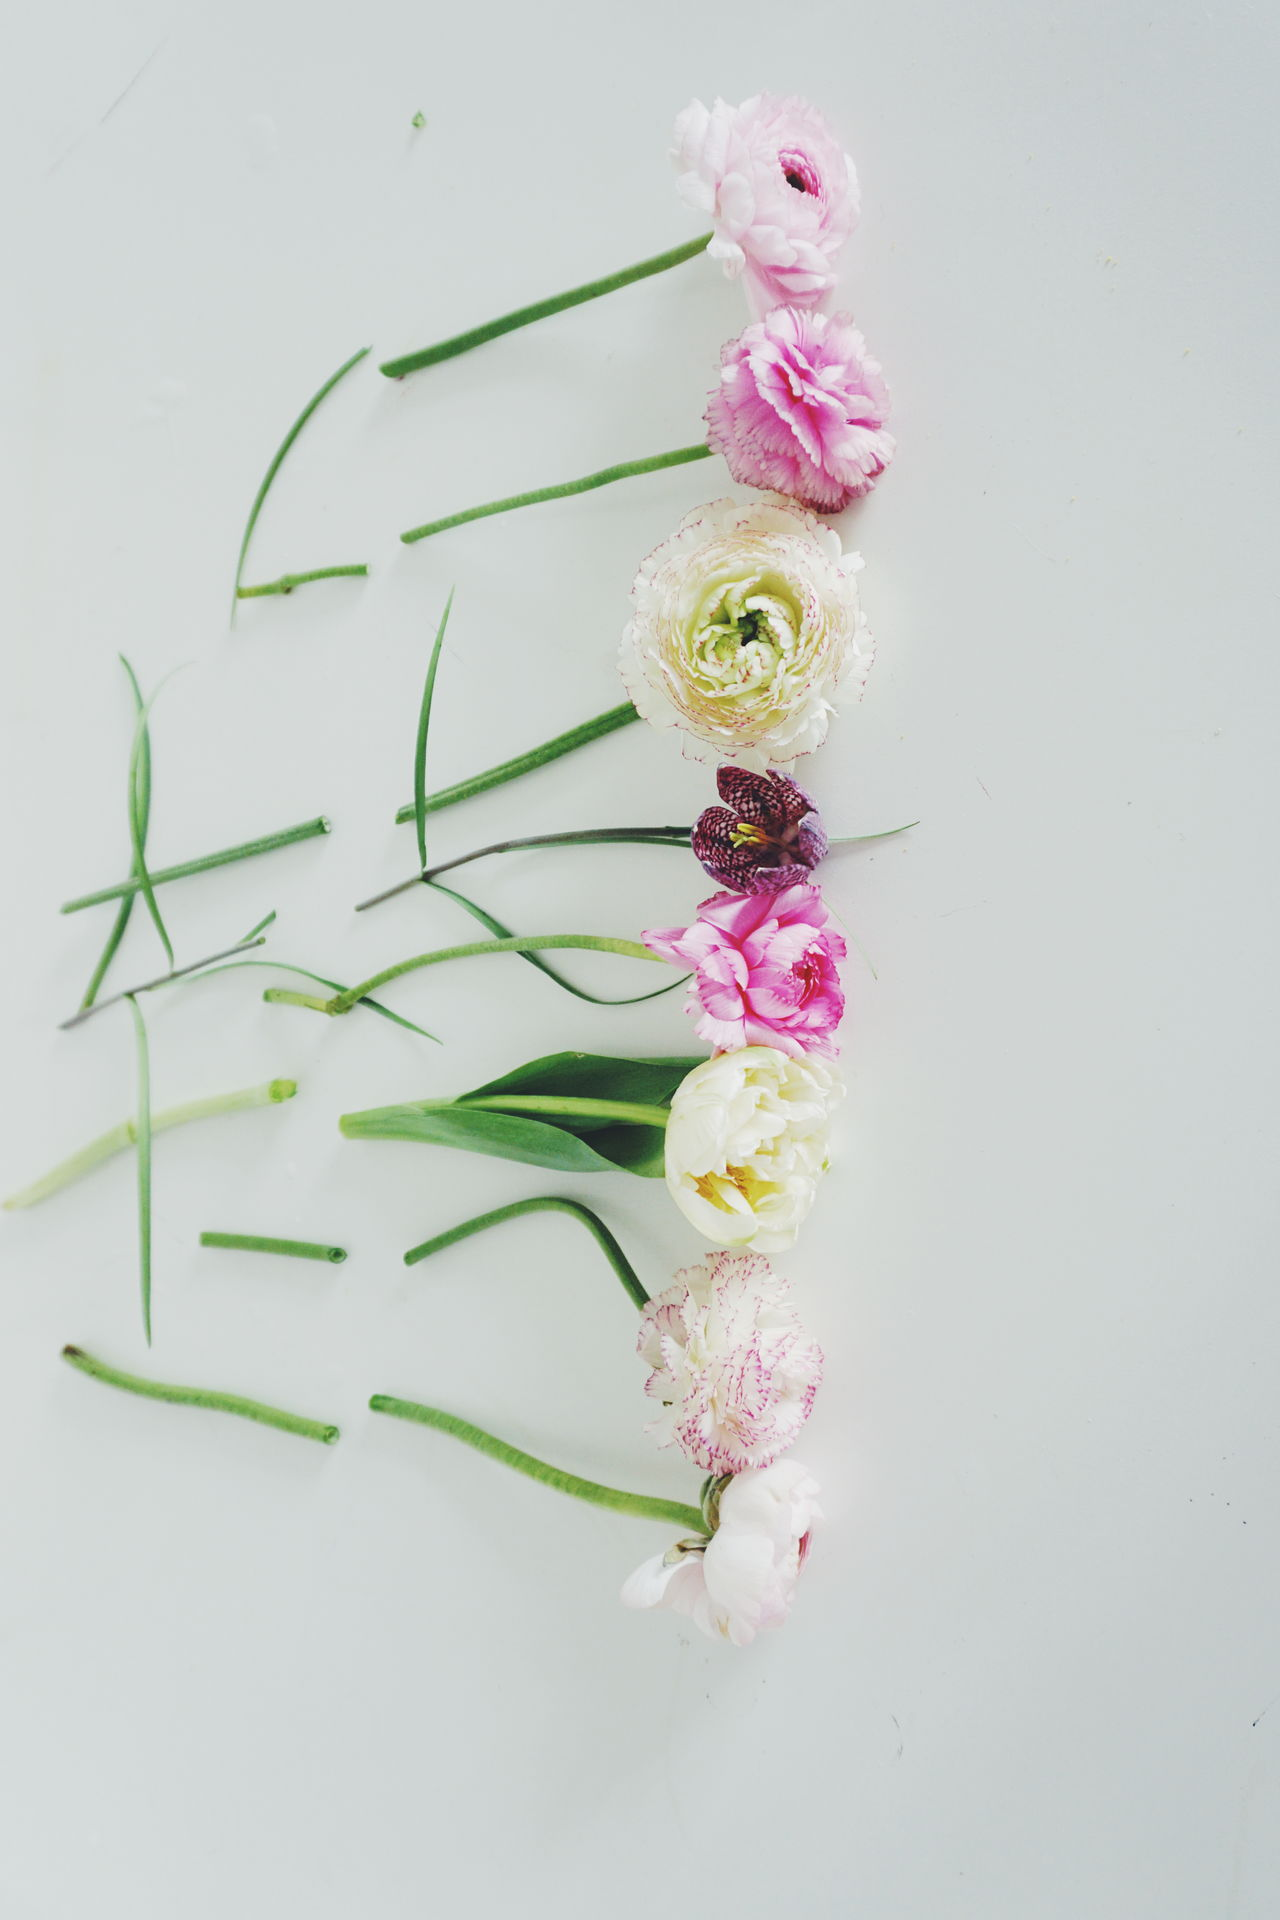 Spring flowers Beauty In Nature Close-up Day Environmental Conservation Flower Flower Arrangement Flower Head Fragility Freshness Indoors  Nature No People Pink Color Pink Flower Plant Spring Spring Flowers Springtime White Background